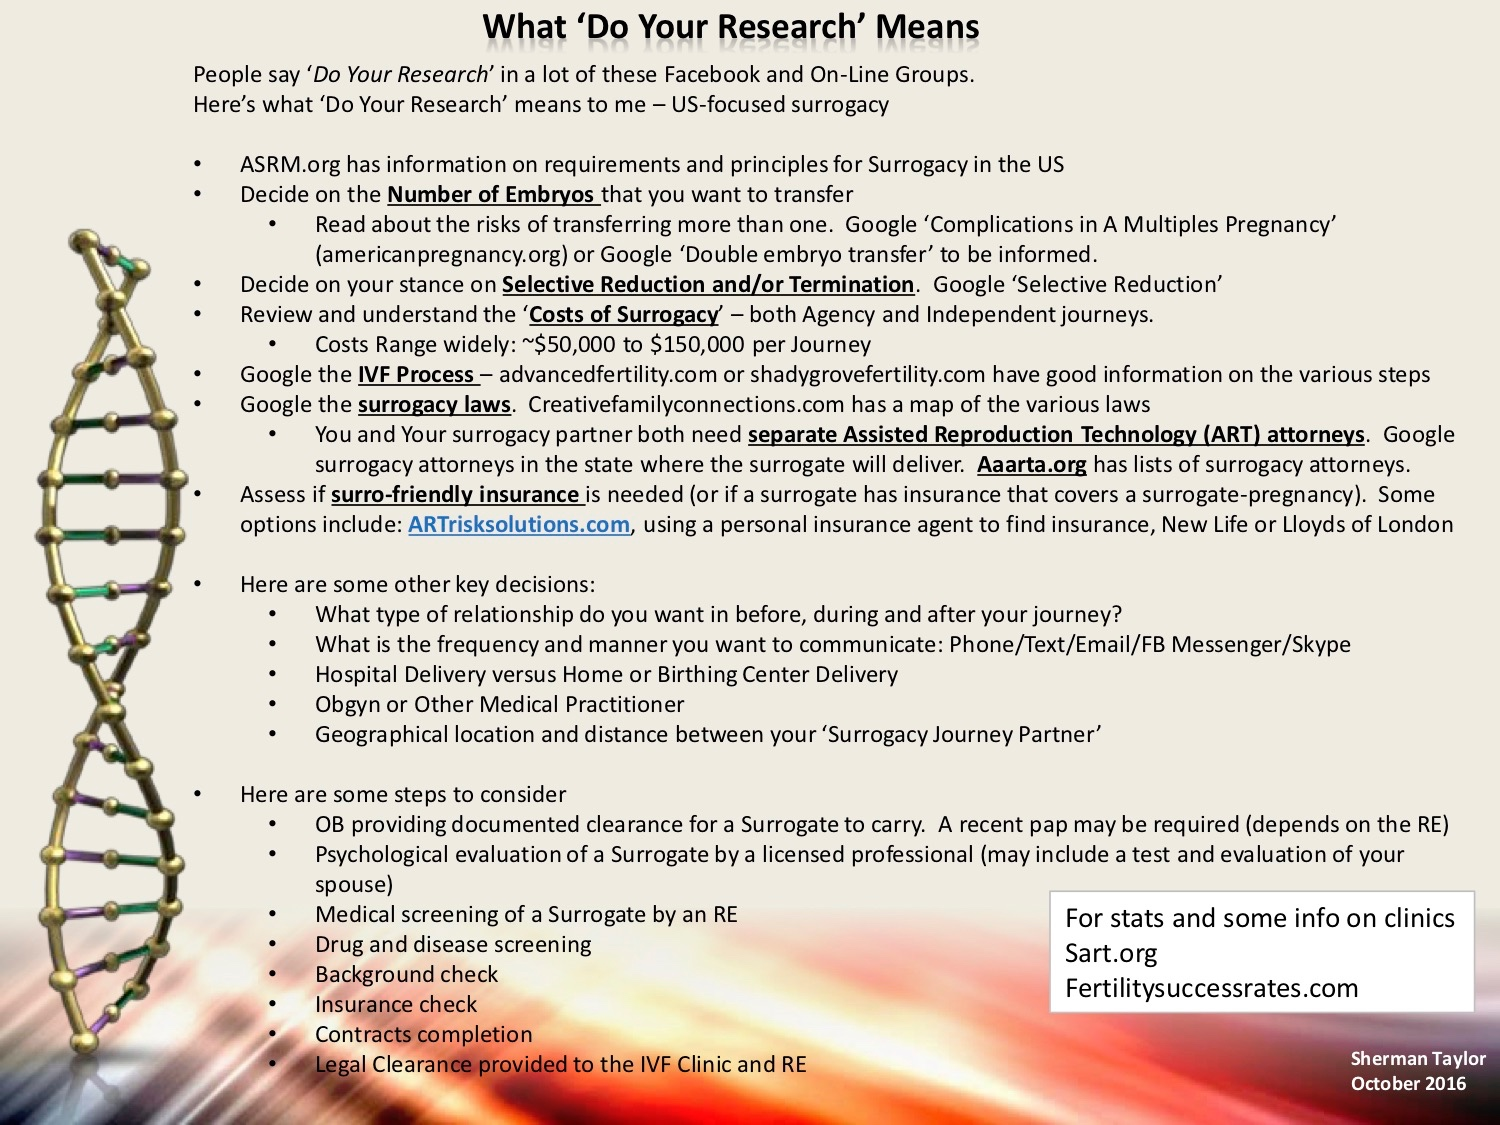 Do+Your+Research+Oct+2016+v2.jpg